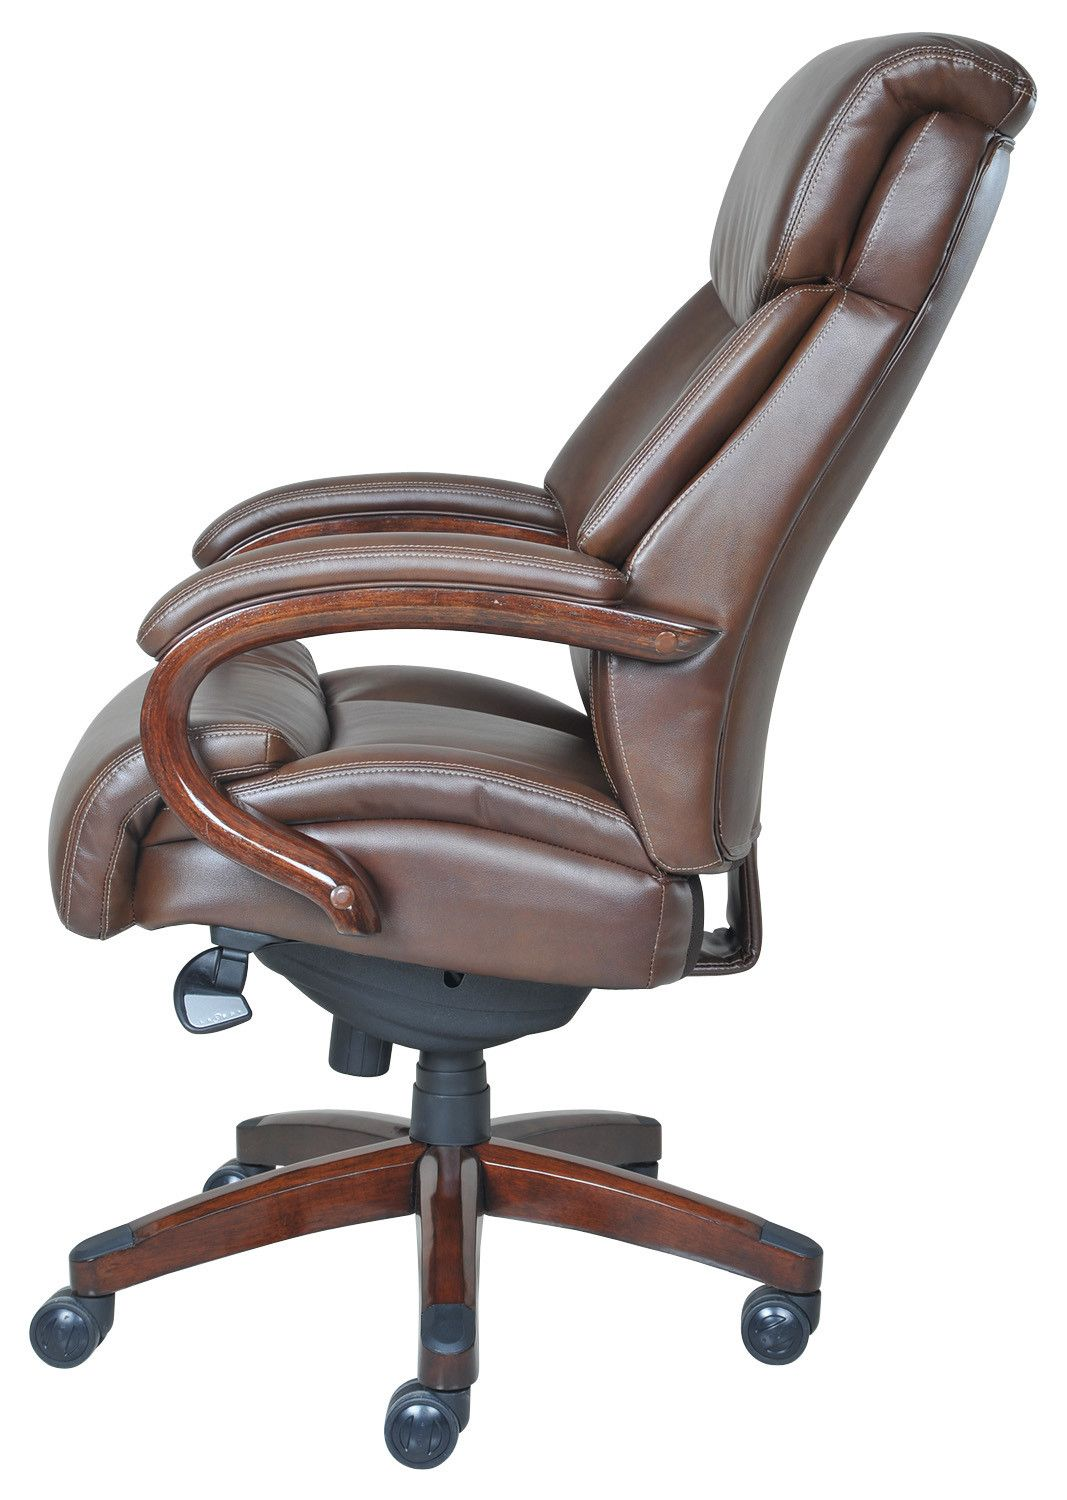 Lazy Boy Office Chair Staples 2021 In 2021 Office Chair Chair La Z Boy Laz y boy office chair